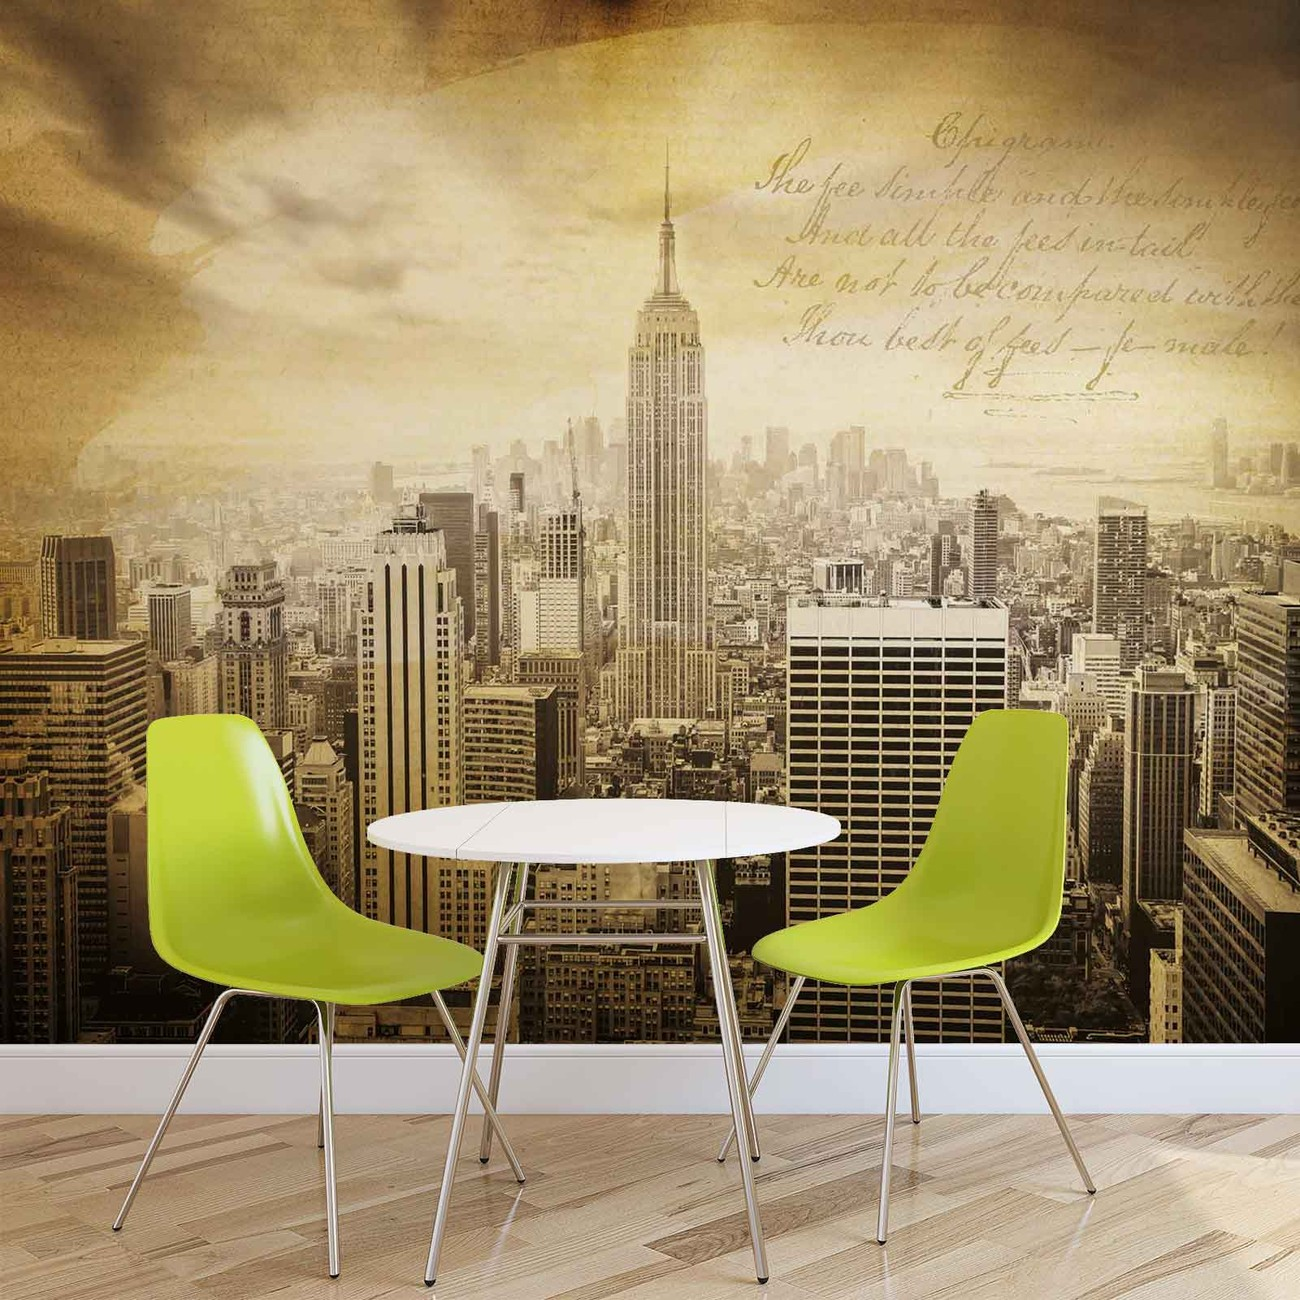 City new york vintage sepia wall paper mural buy at for Acheter poster mural new york